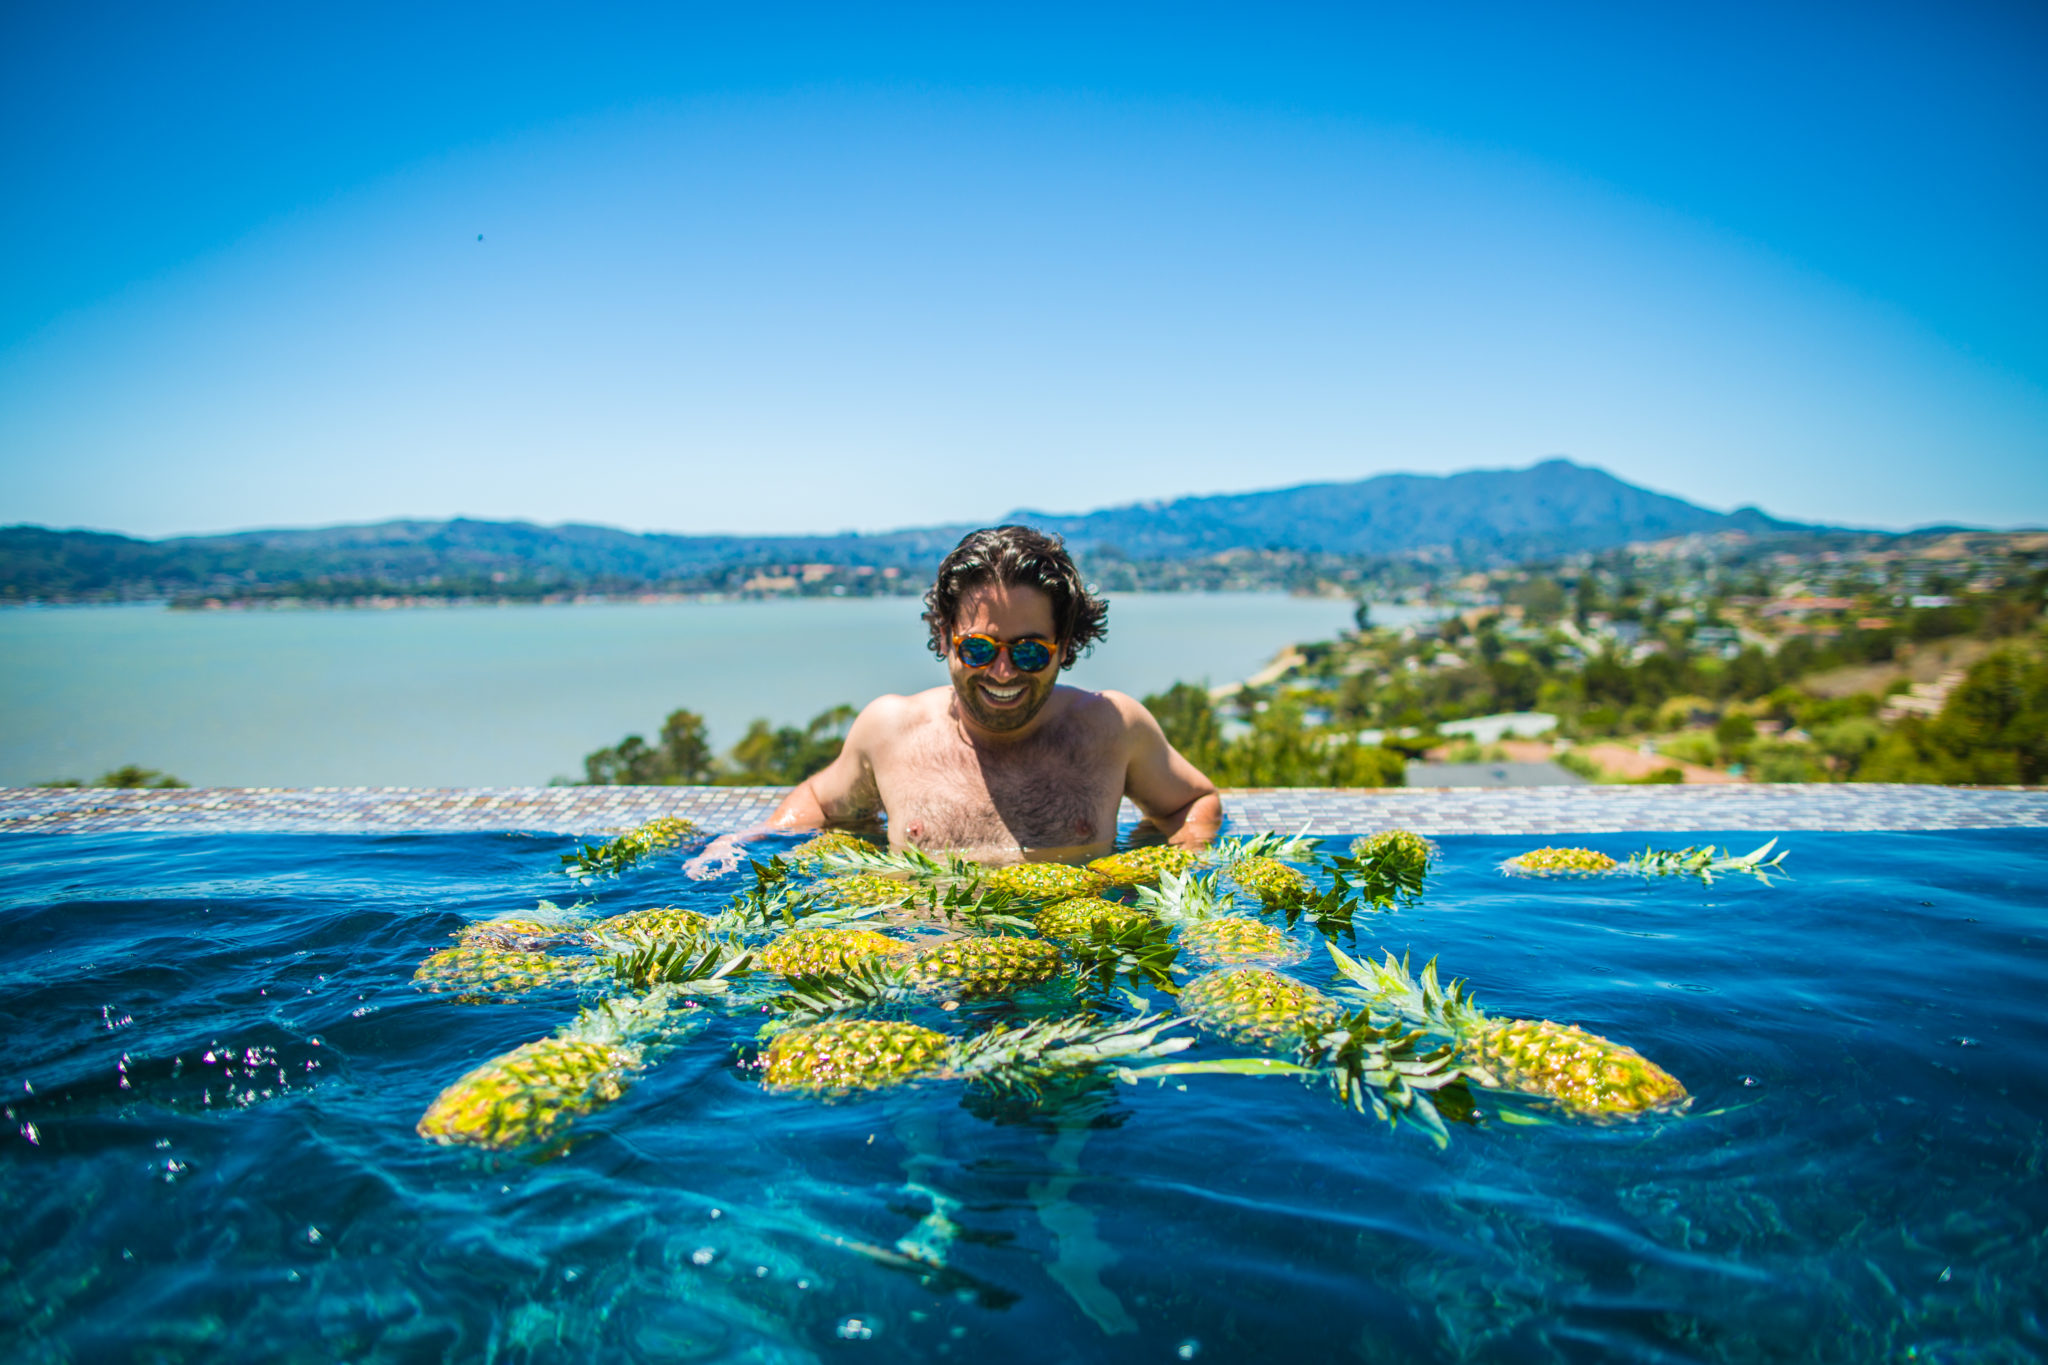 viceroy-press-photo-pool-of-pineapples